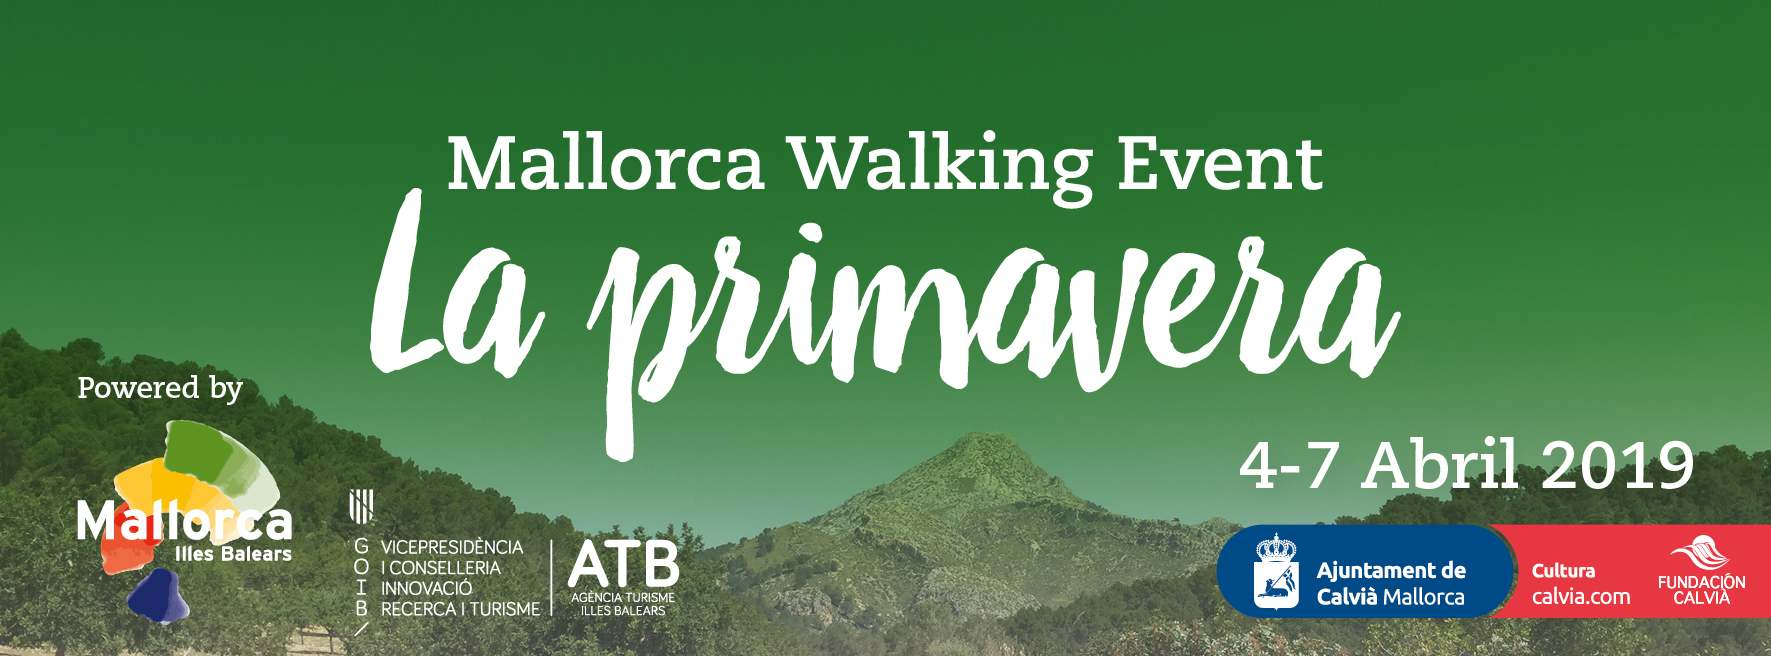 Mallorca Walking Event 2019